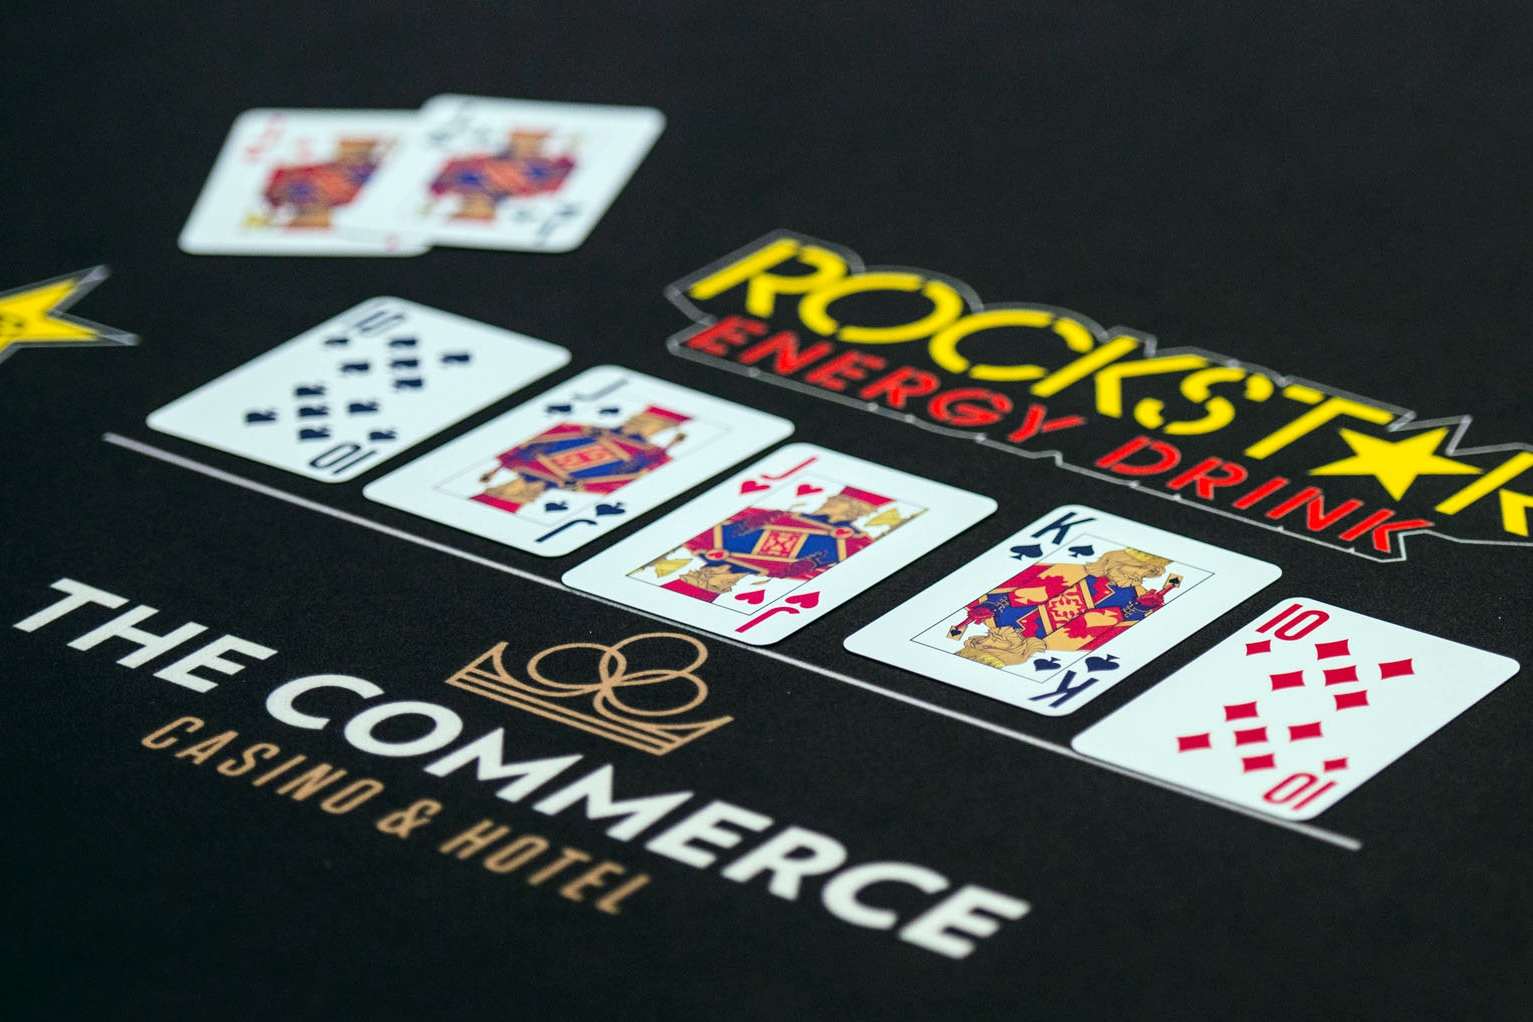 Faded Spade poker playing cards at Commerce Casino